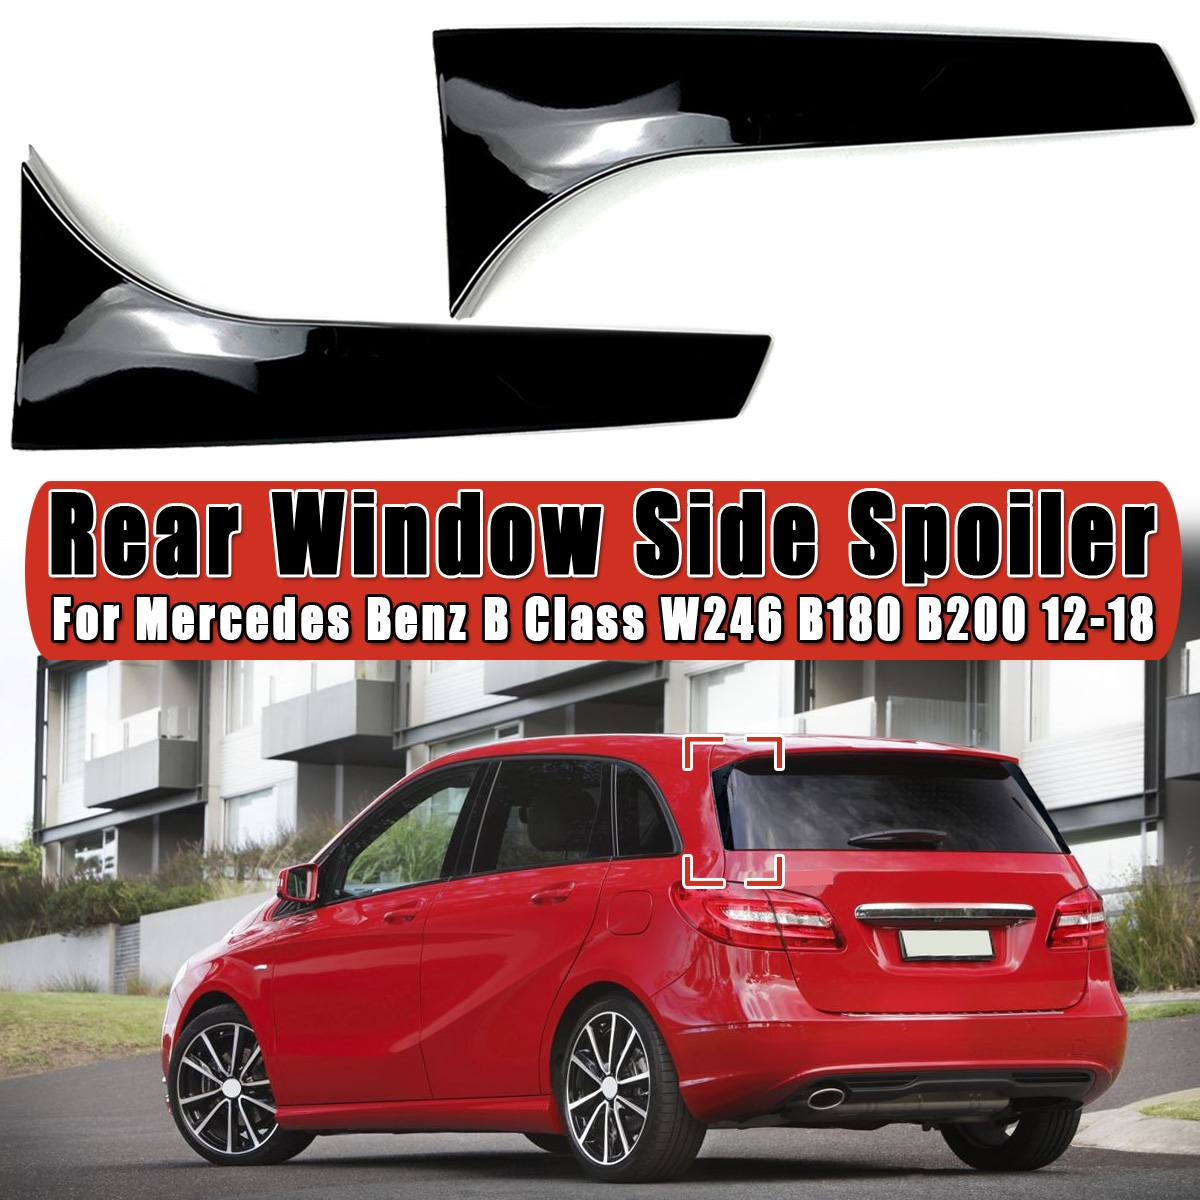 2pcs/set Rear Window Side Spoiler Spoiler Canard Canards Splitter For <font><b>Mercedes</b></font> for Benz B Class <font><b>W246</b></font> B180 <font><b>B200</b></font> 2012 2013-2018 image